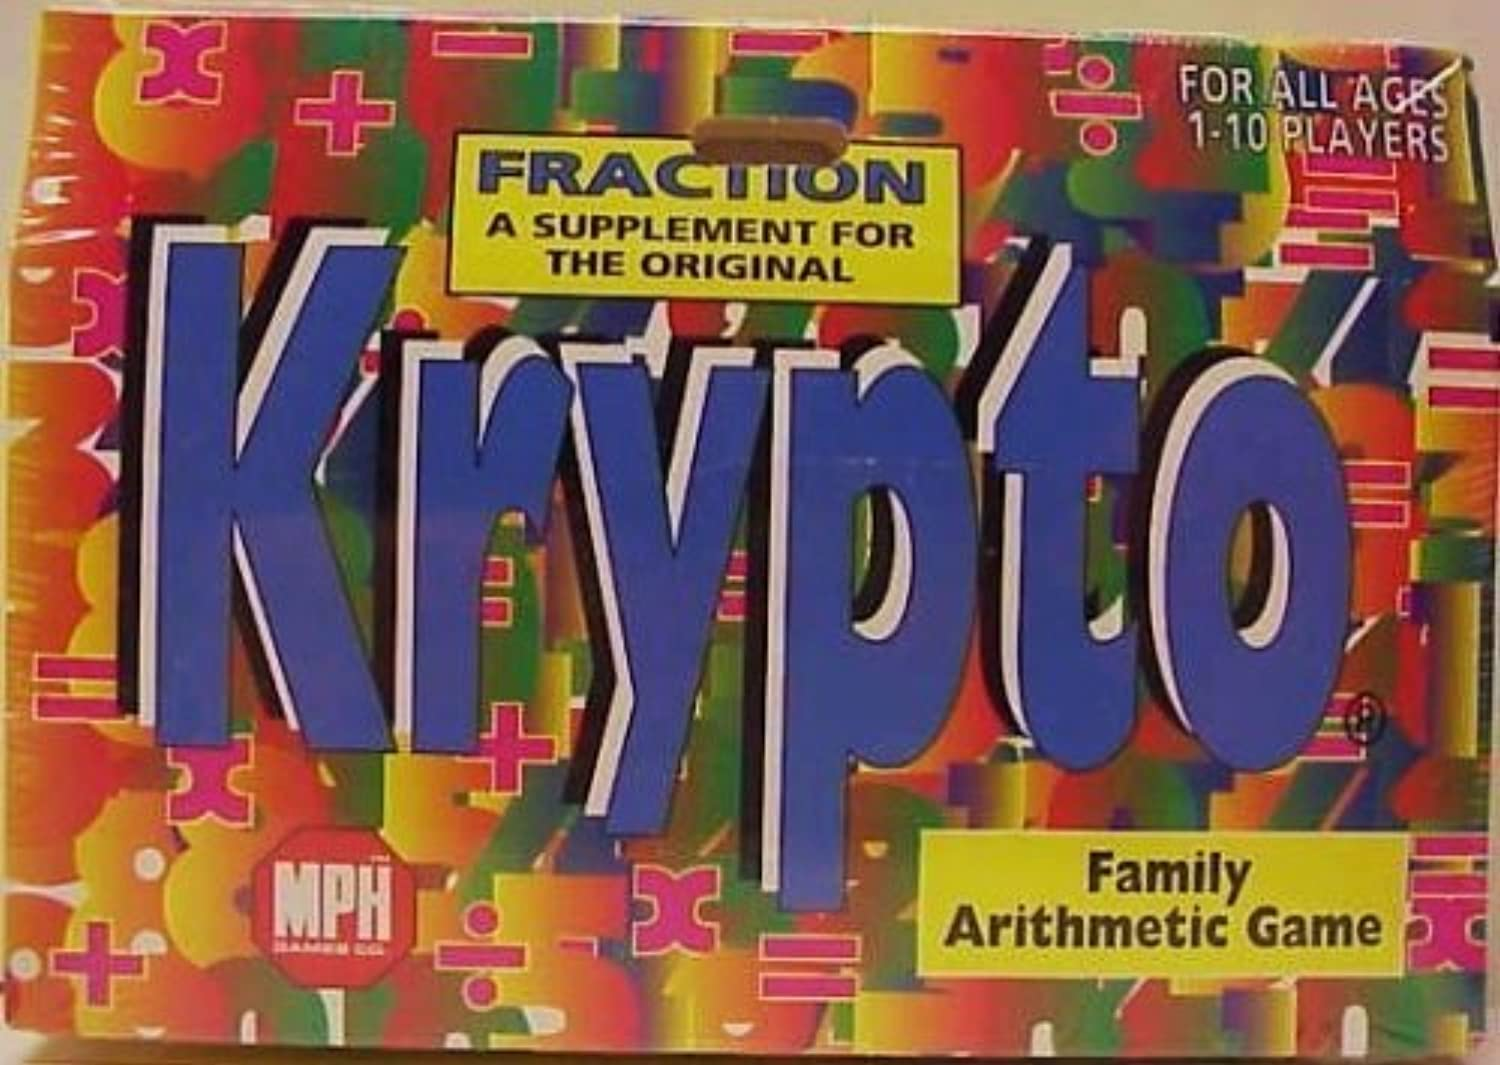 Krypto Fraction Supplement to Original Krypto Card Deck by MPH Games